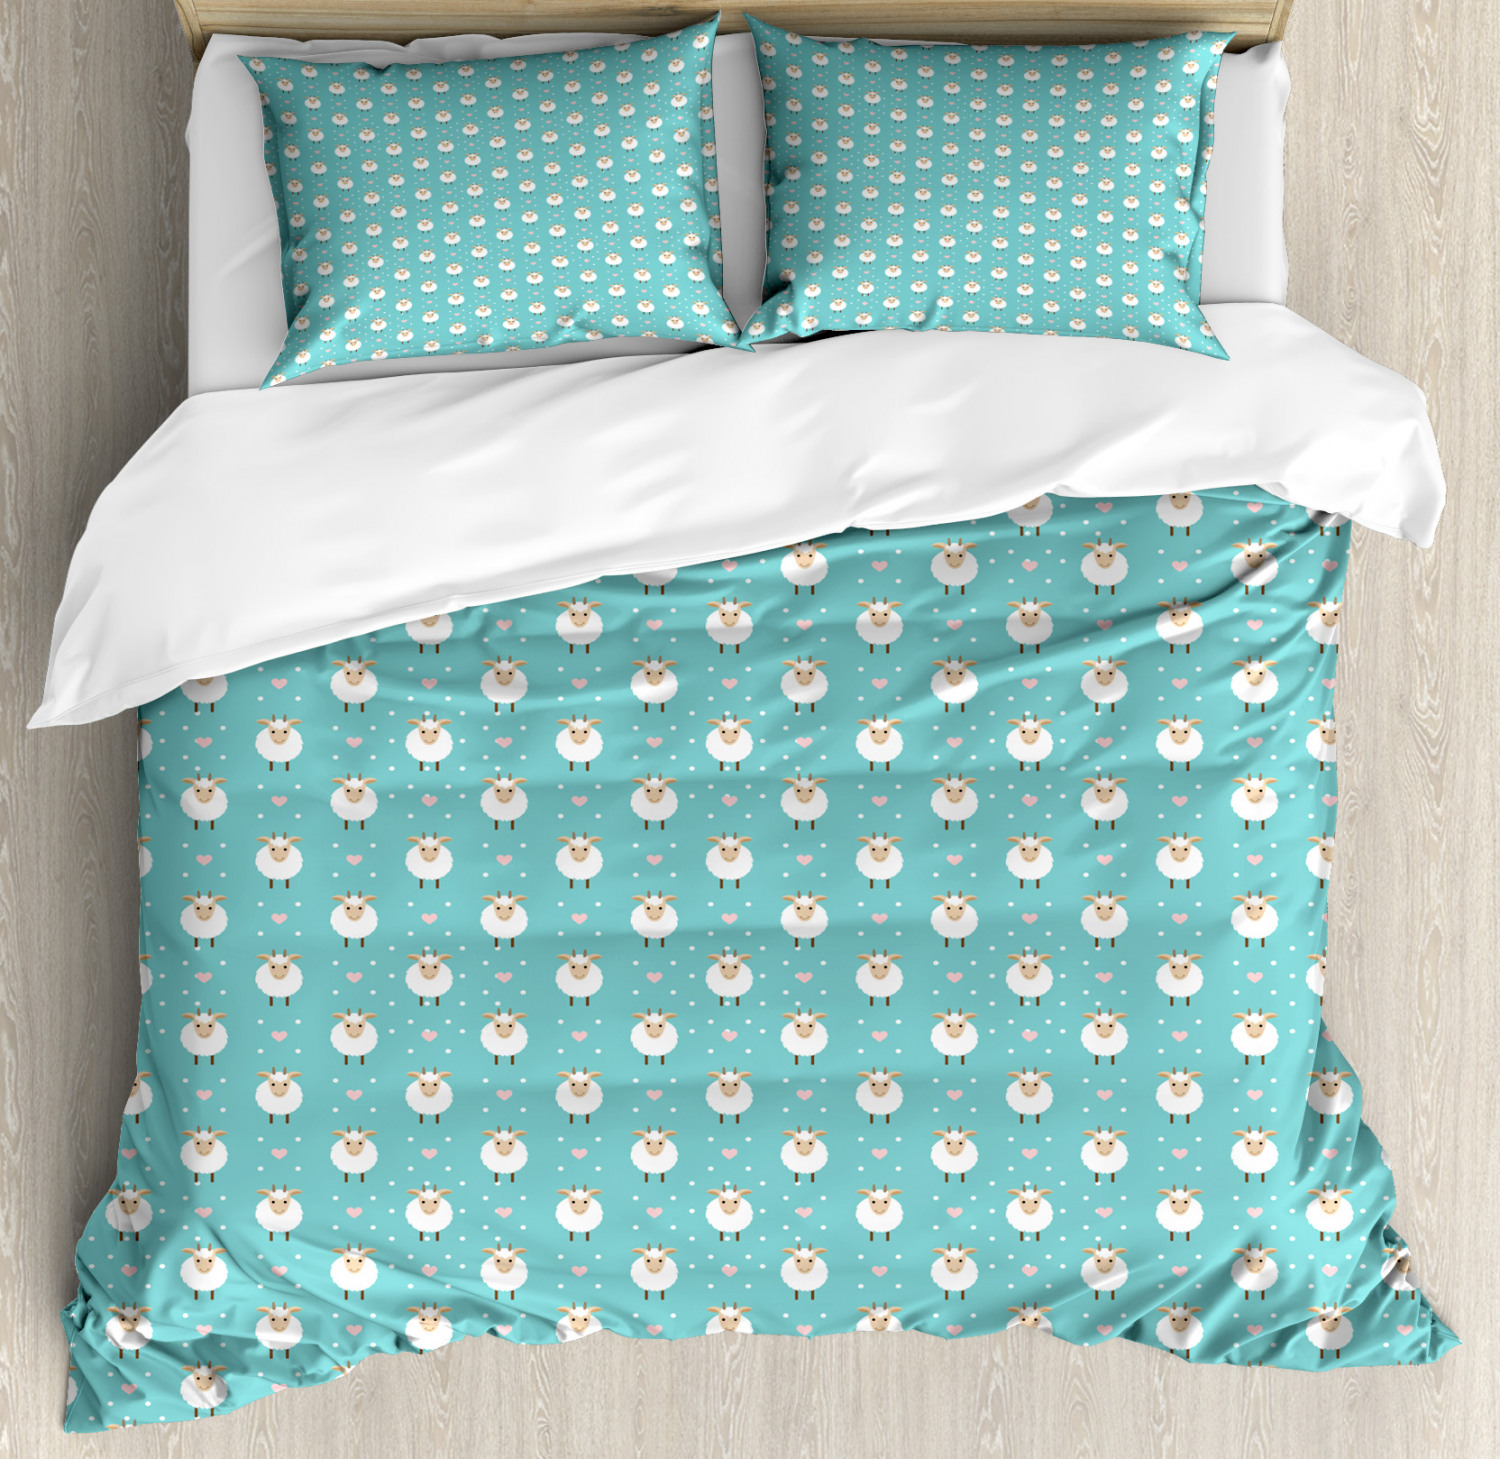 goat duvet cover set twin queen king sizes with pillow shams ebay. Black Bedroom Furniture Sets. Home Design Ideas